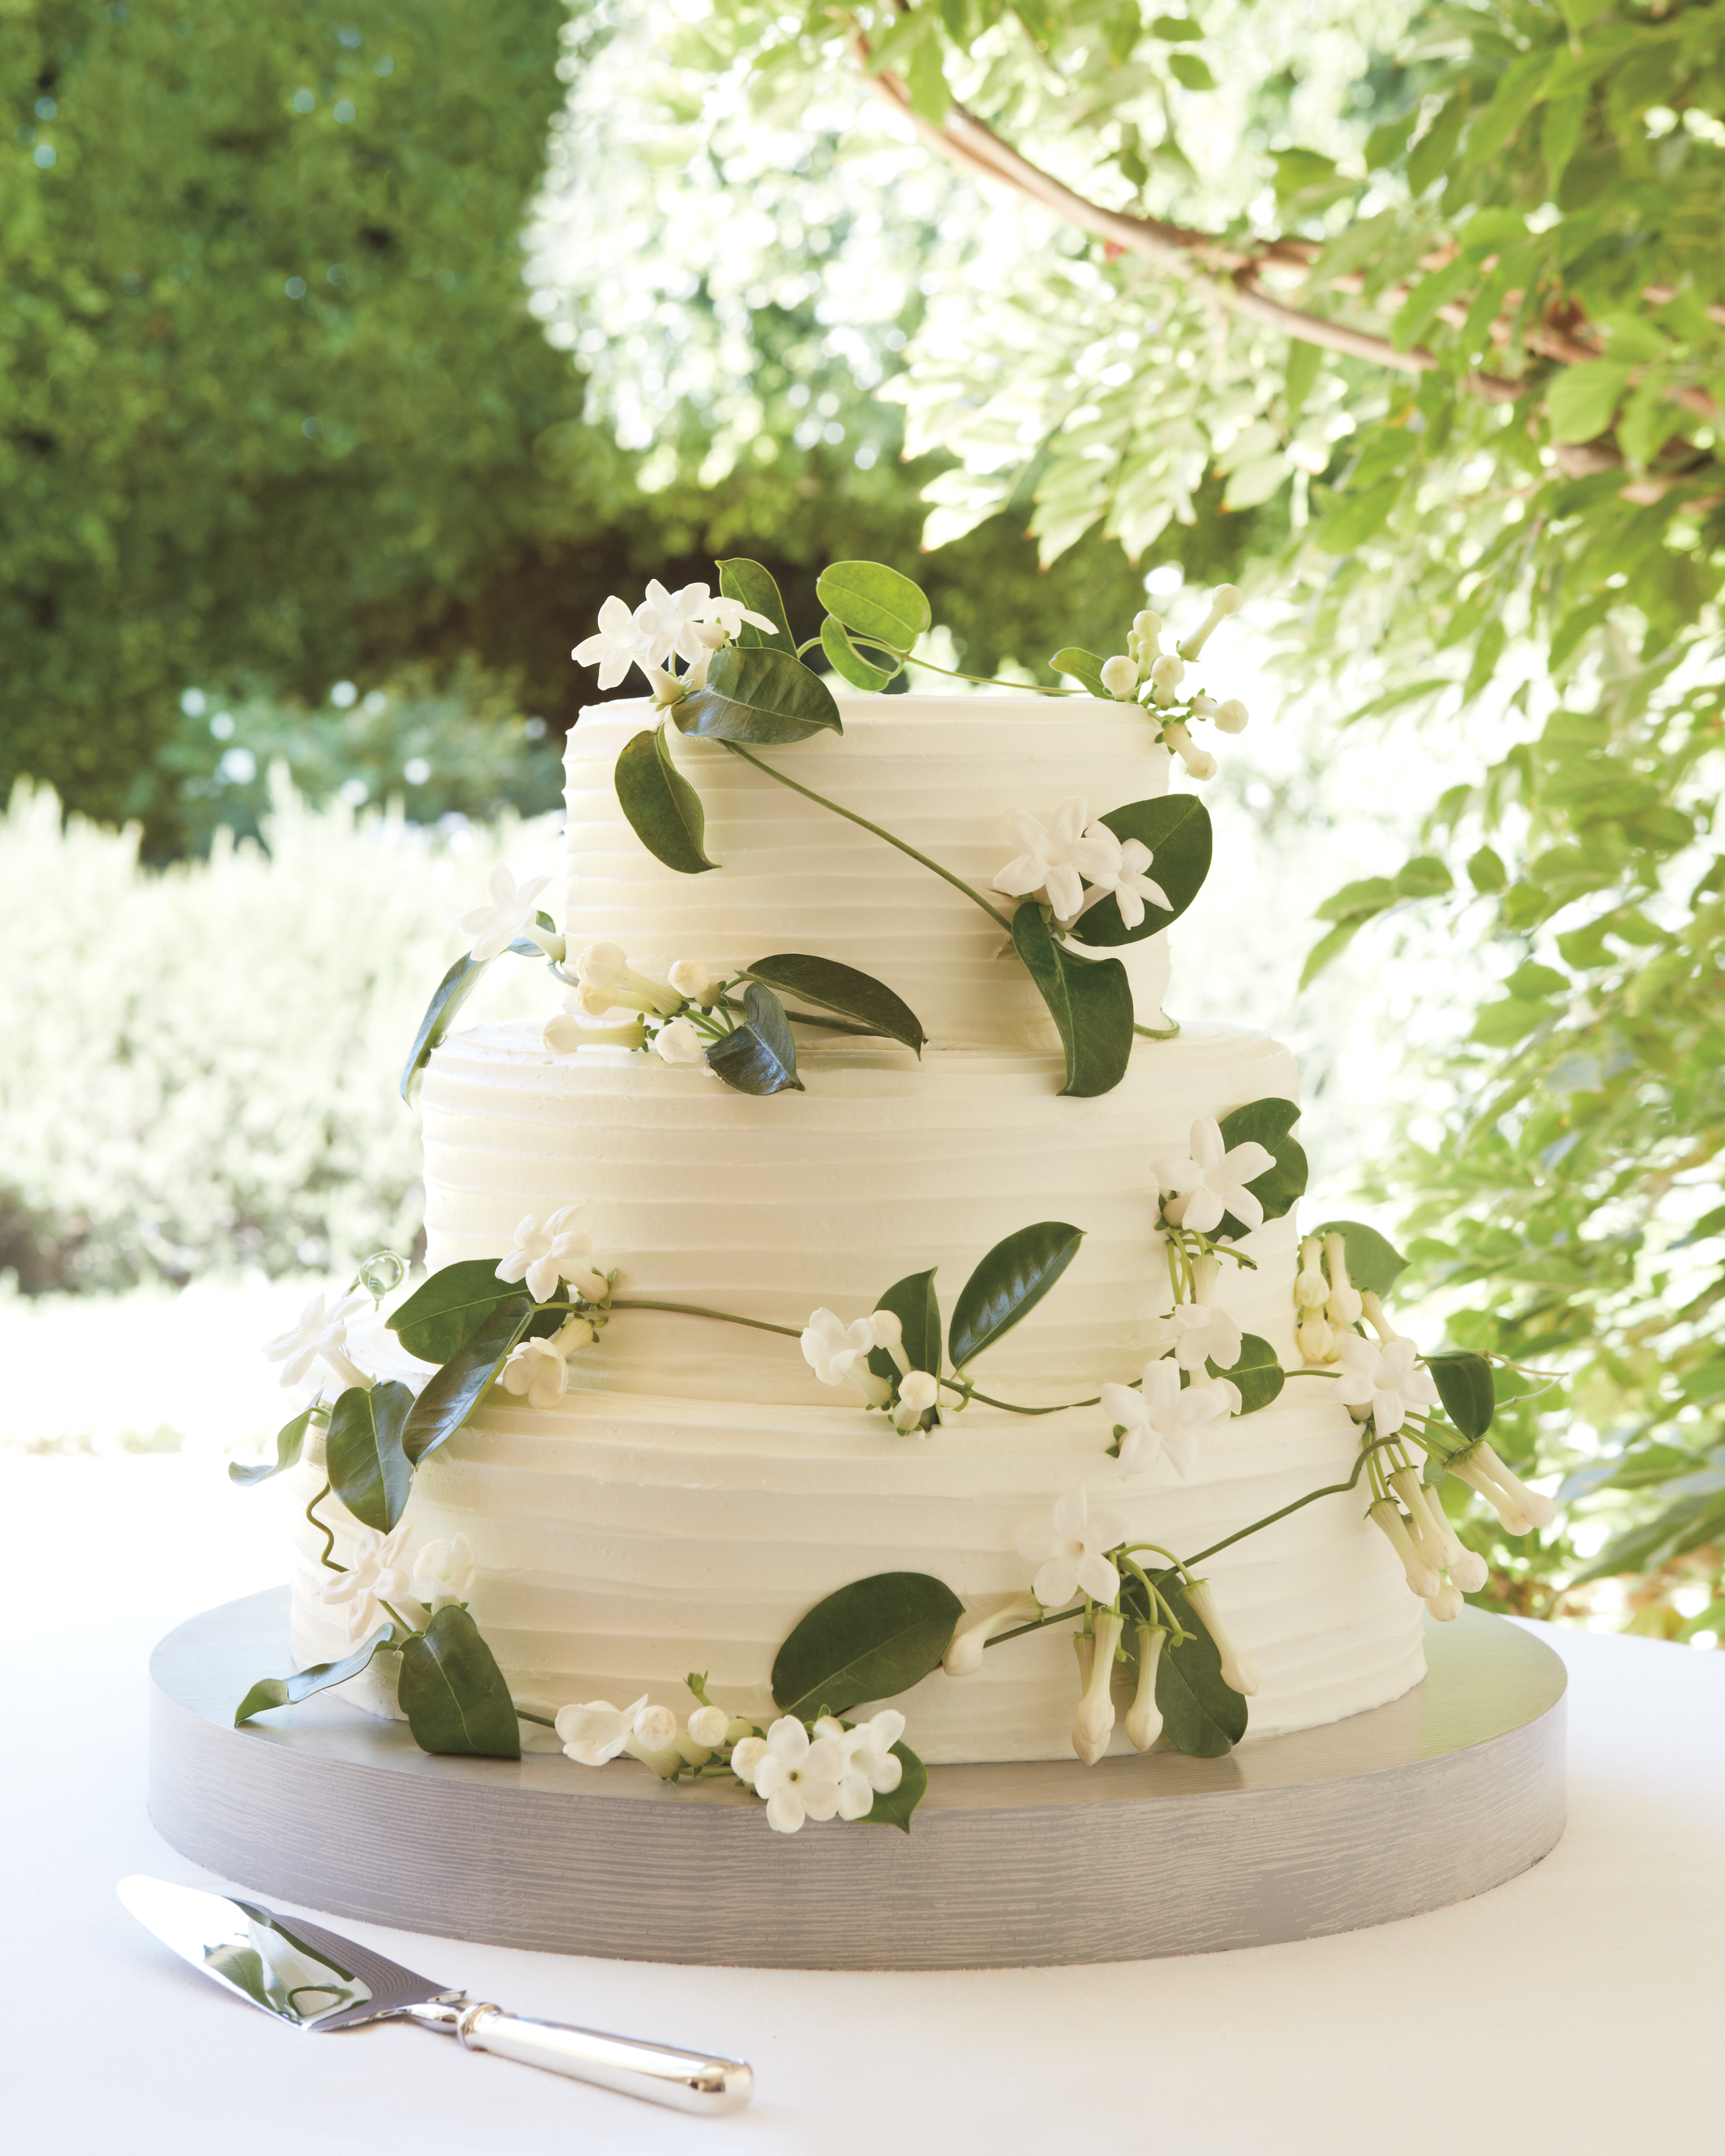 wedding-cake-mwd109296.jpg